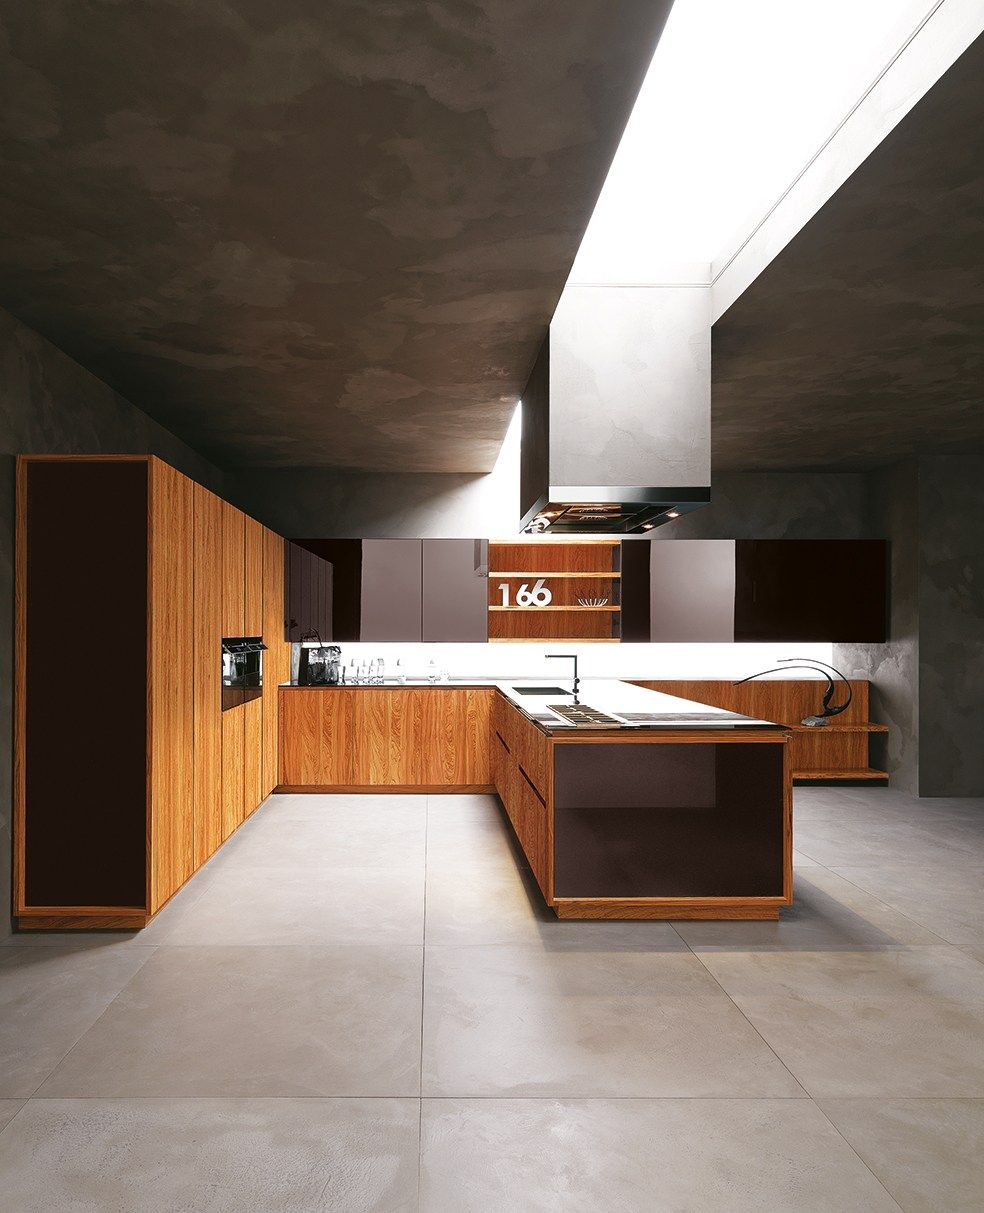 Cesar Kitchens Lacquered Olive Wood Kitchen Yara Vipcesar Arredamenti